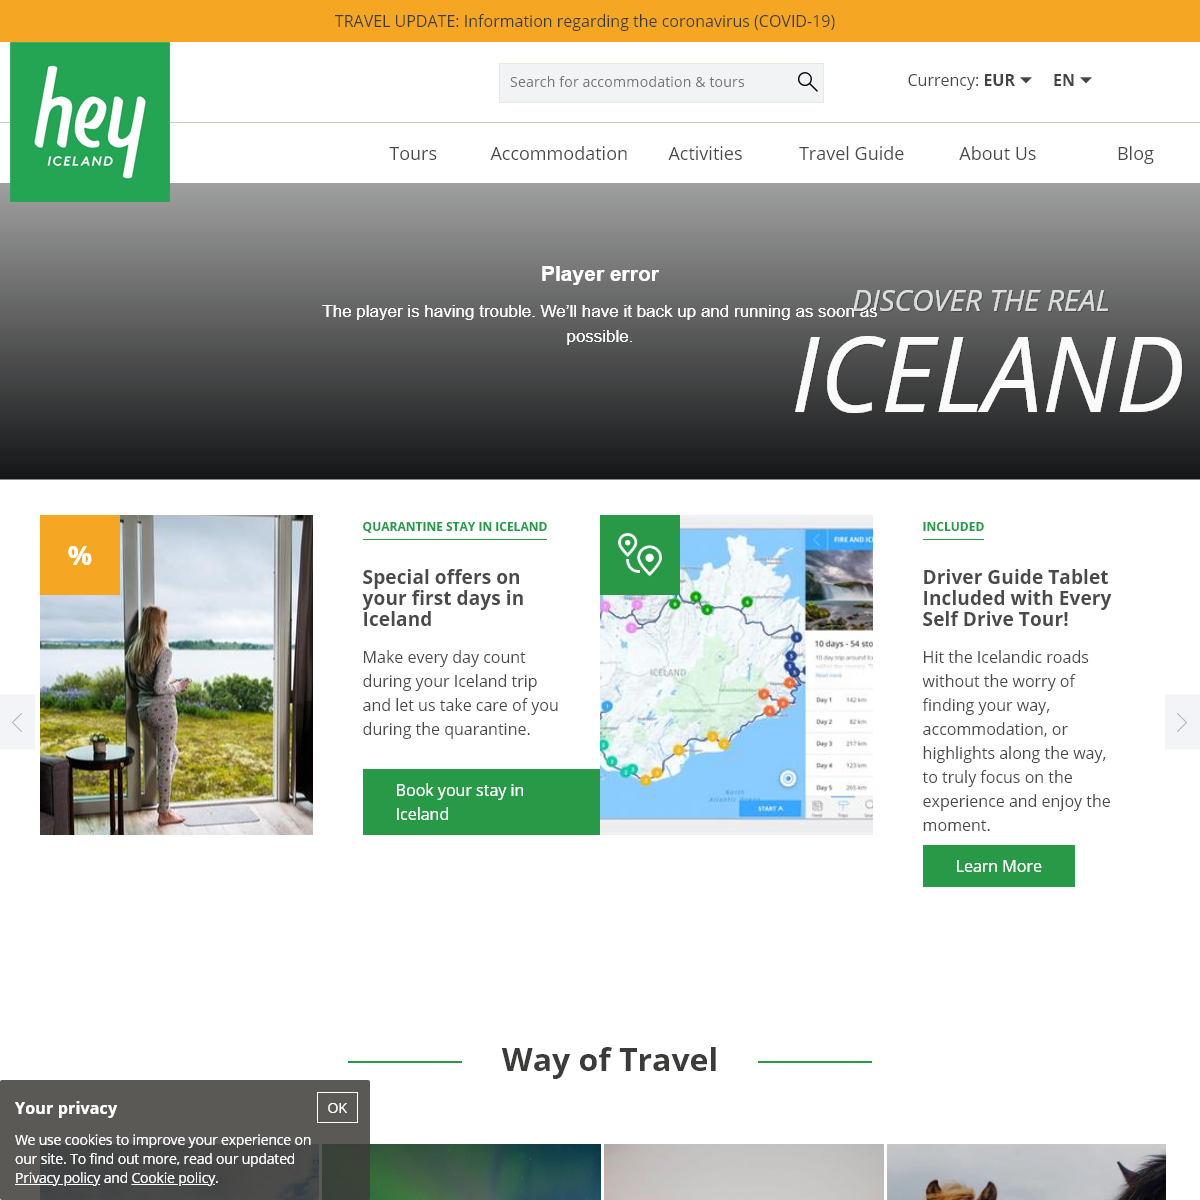 Hey Iceland - Tours and accommodation around Iceland